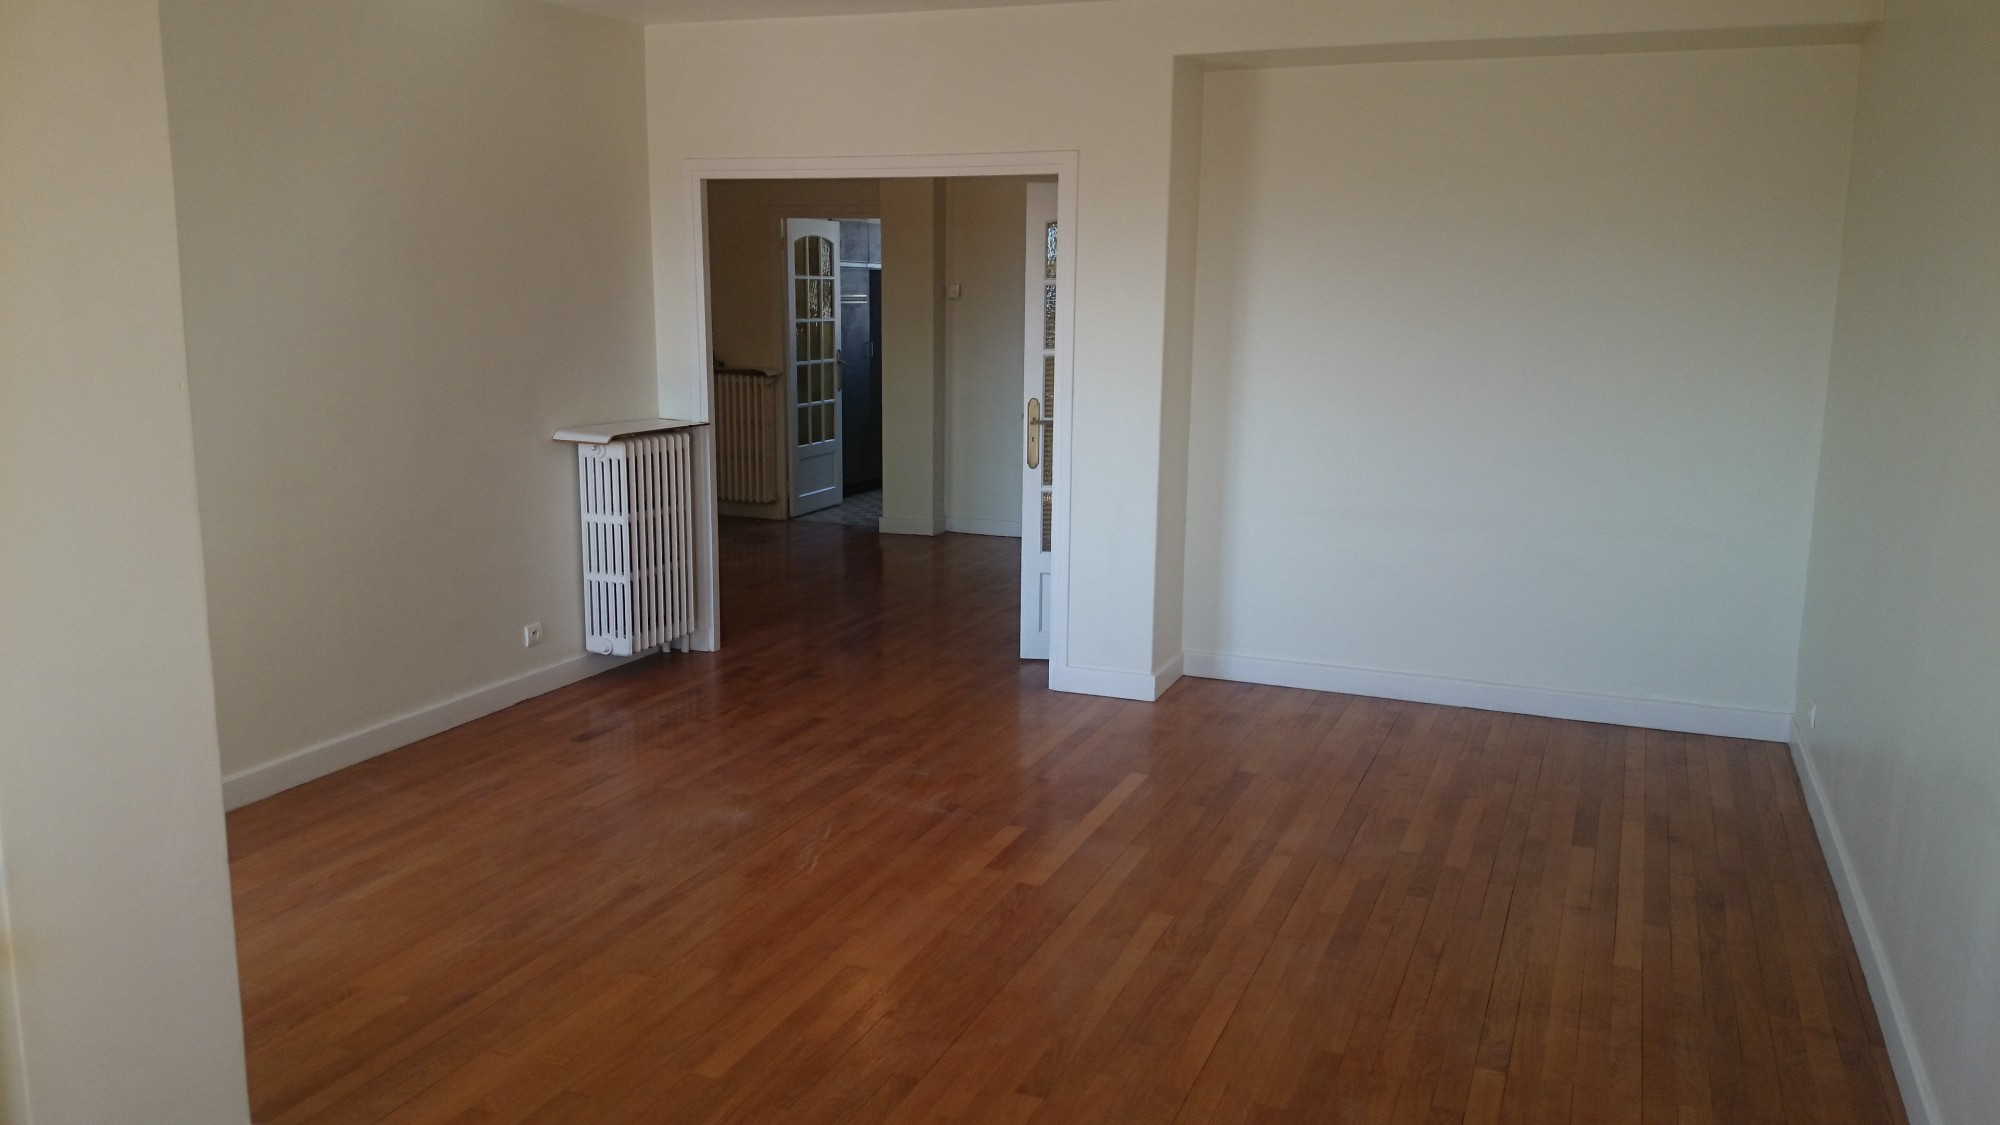 Location t4 avec garage sur valence location agence for Garage ad valence